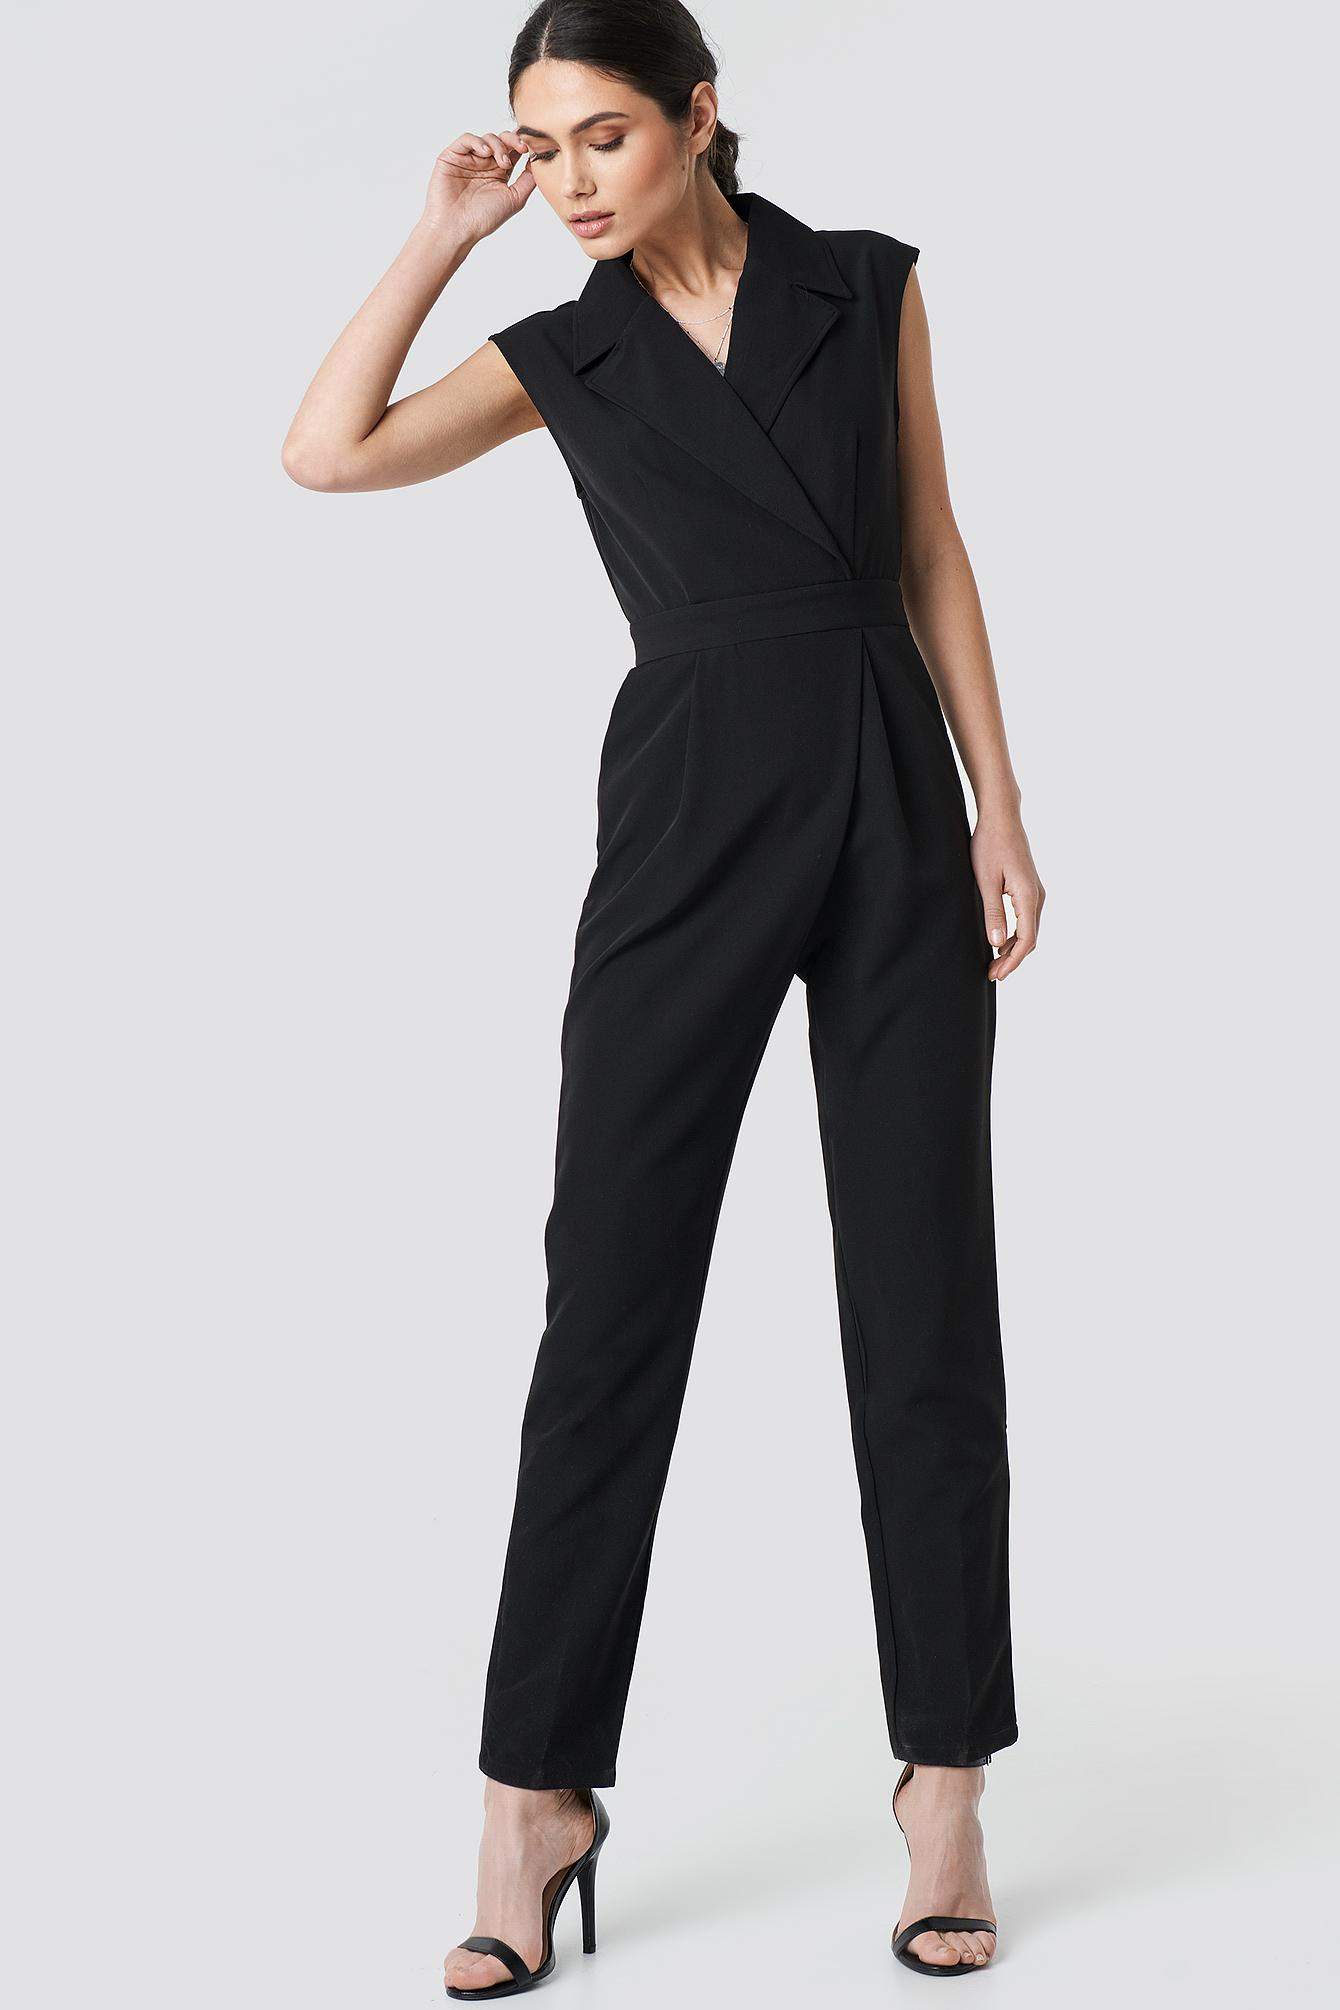 e1943e8cdc15 Lyst - NA-KD Collared Waistband Jumpsuit Black in Black